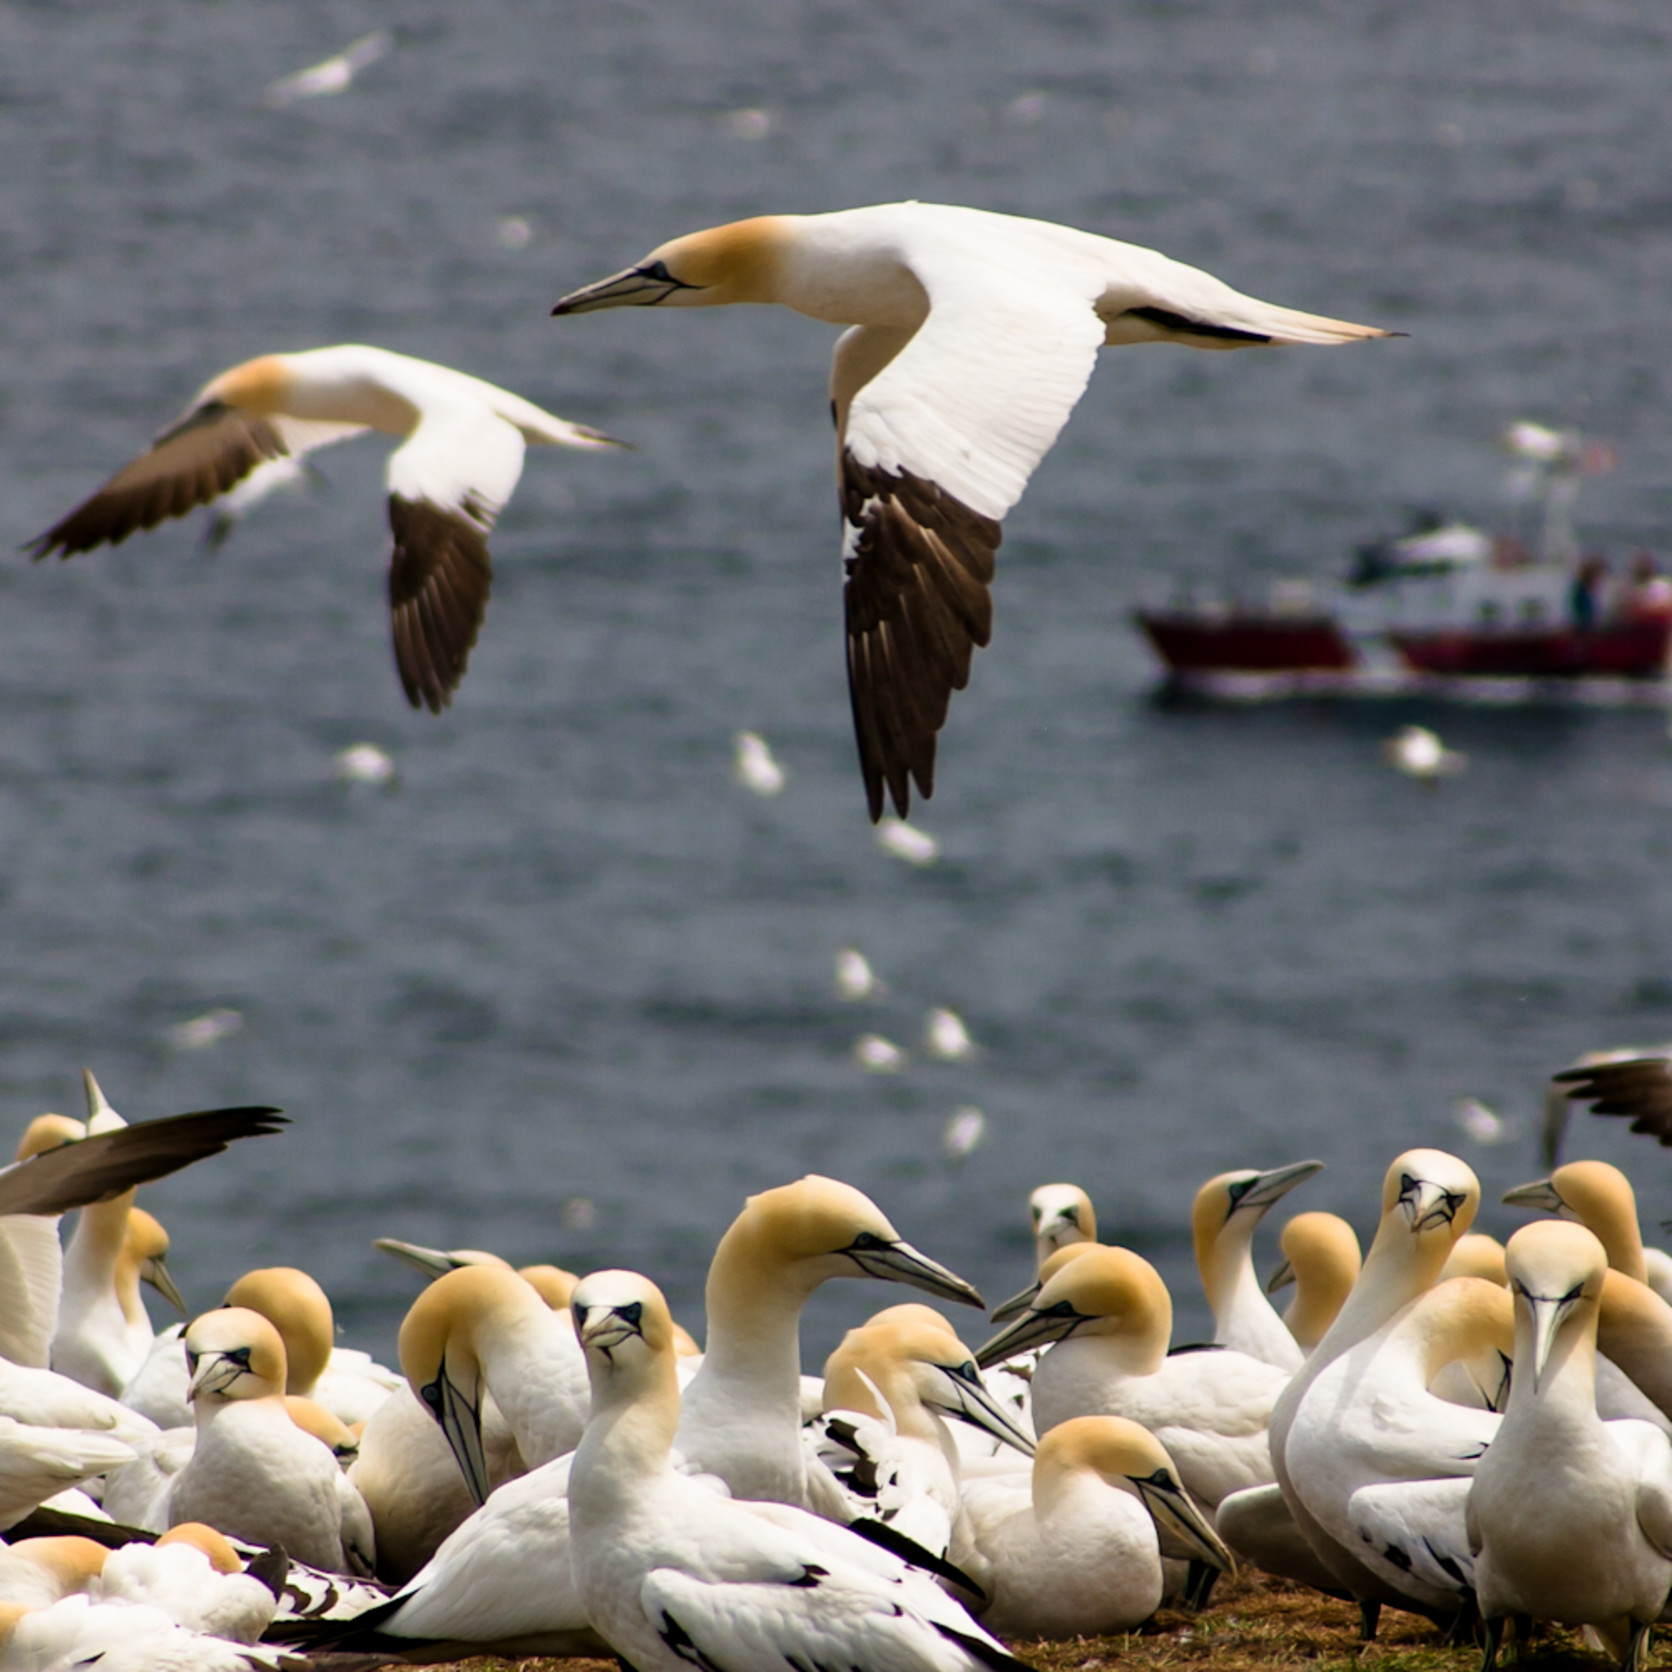 Northern gannets in flight h74wow